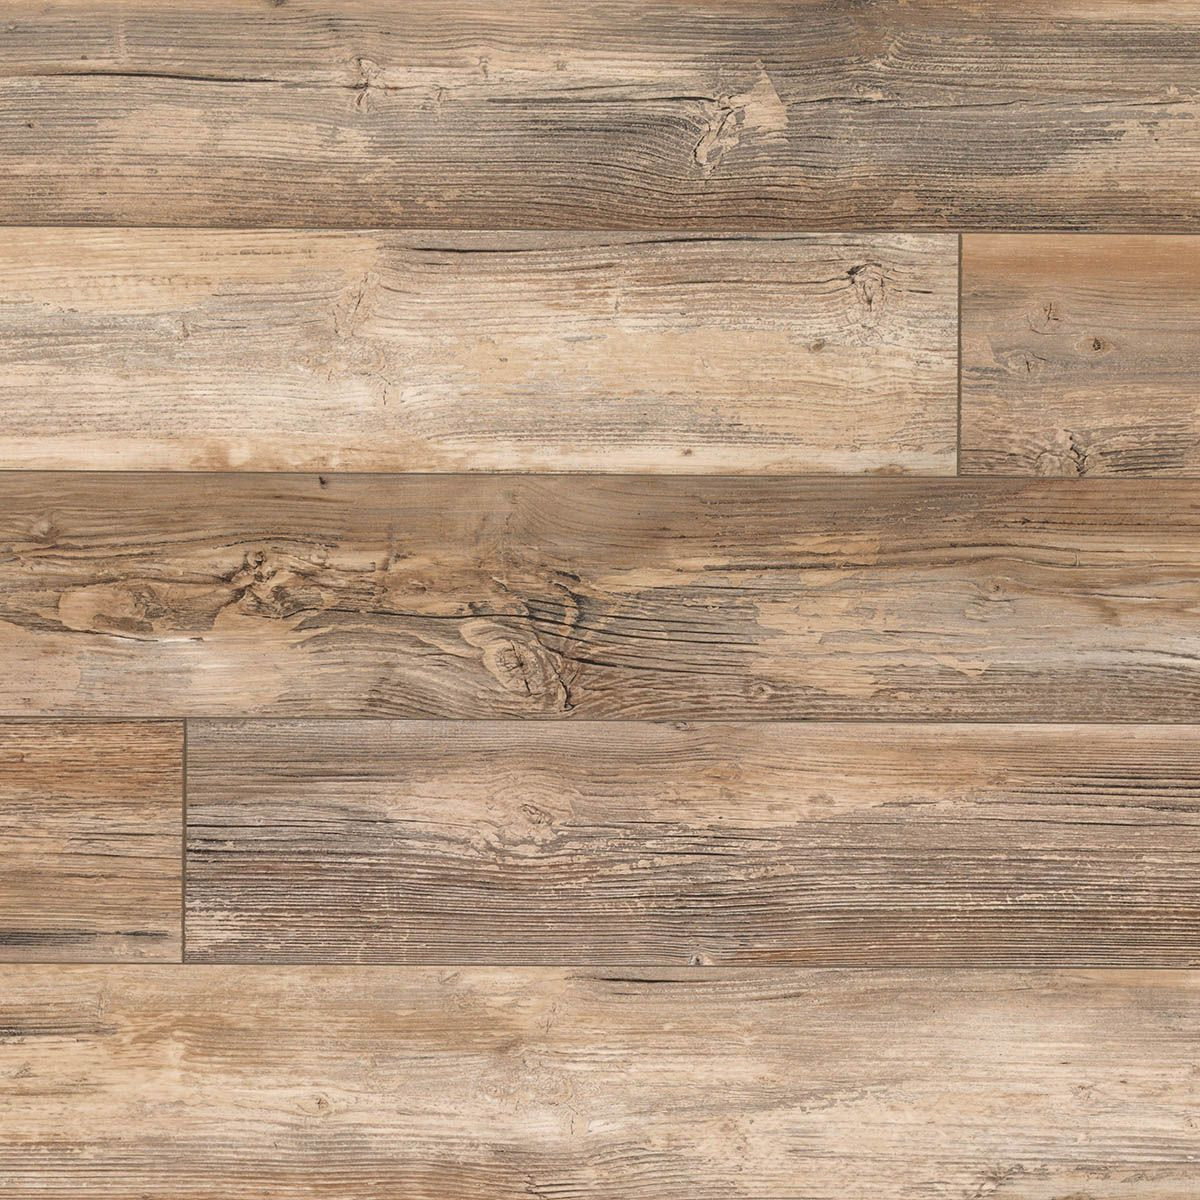 bruce hardwood laminate flooring of flooring gallery mozzone lumber with a warm toffee brown with gray accents just like these planks theyre perfect for elegant comfortable looks gorgeous distressed laminate floor